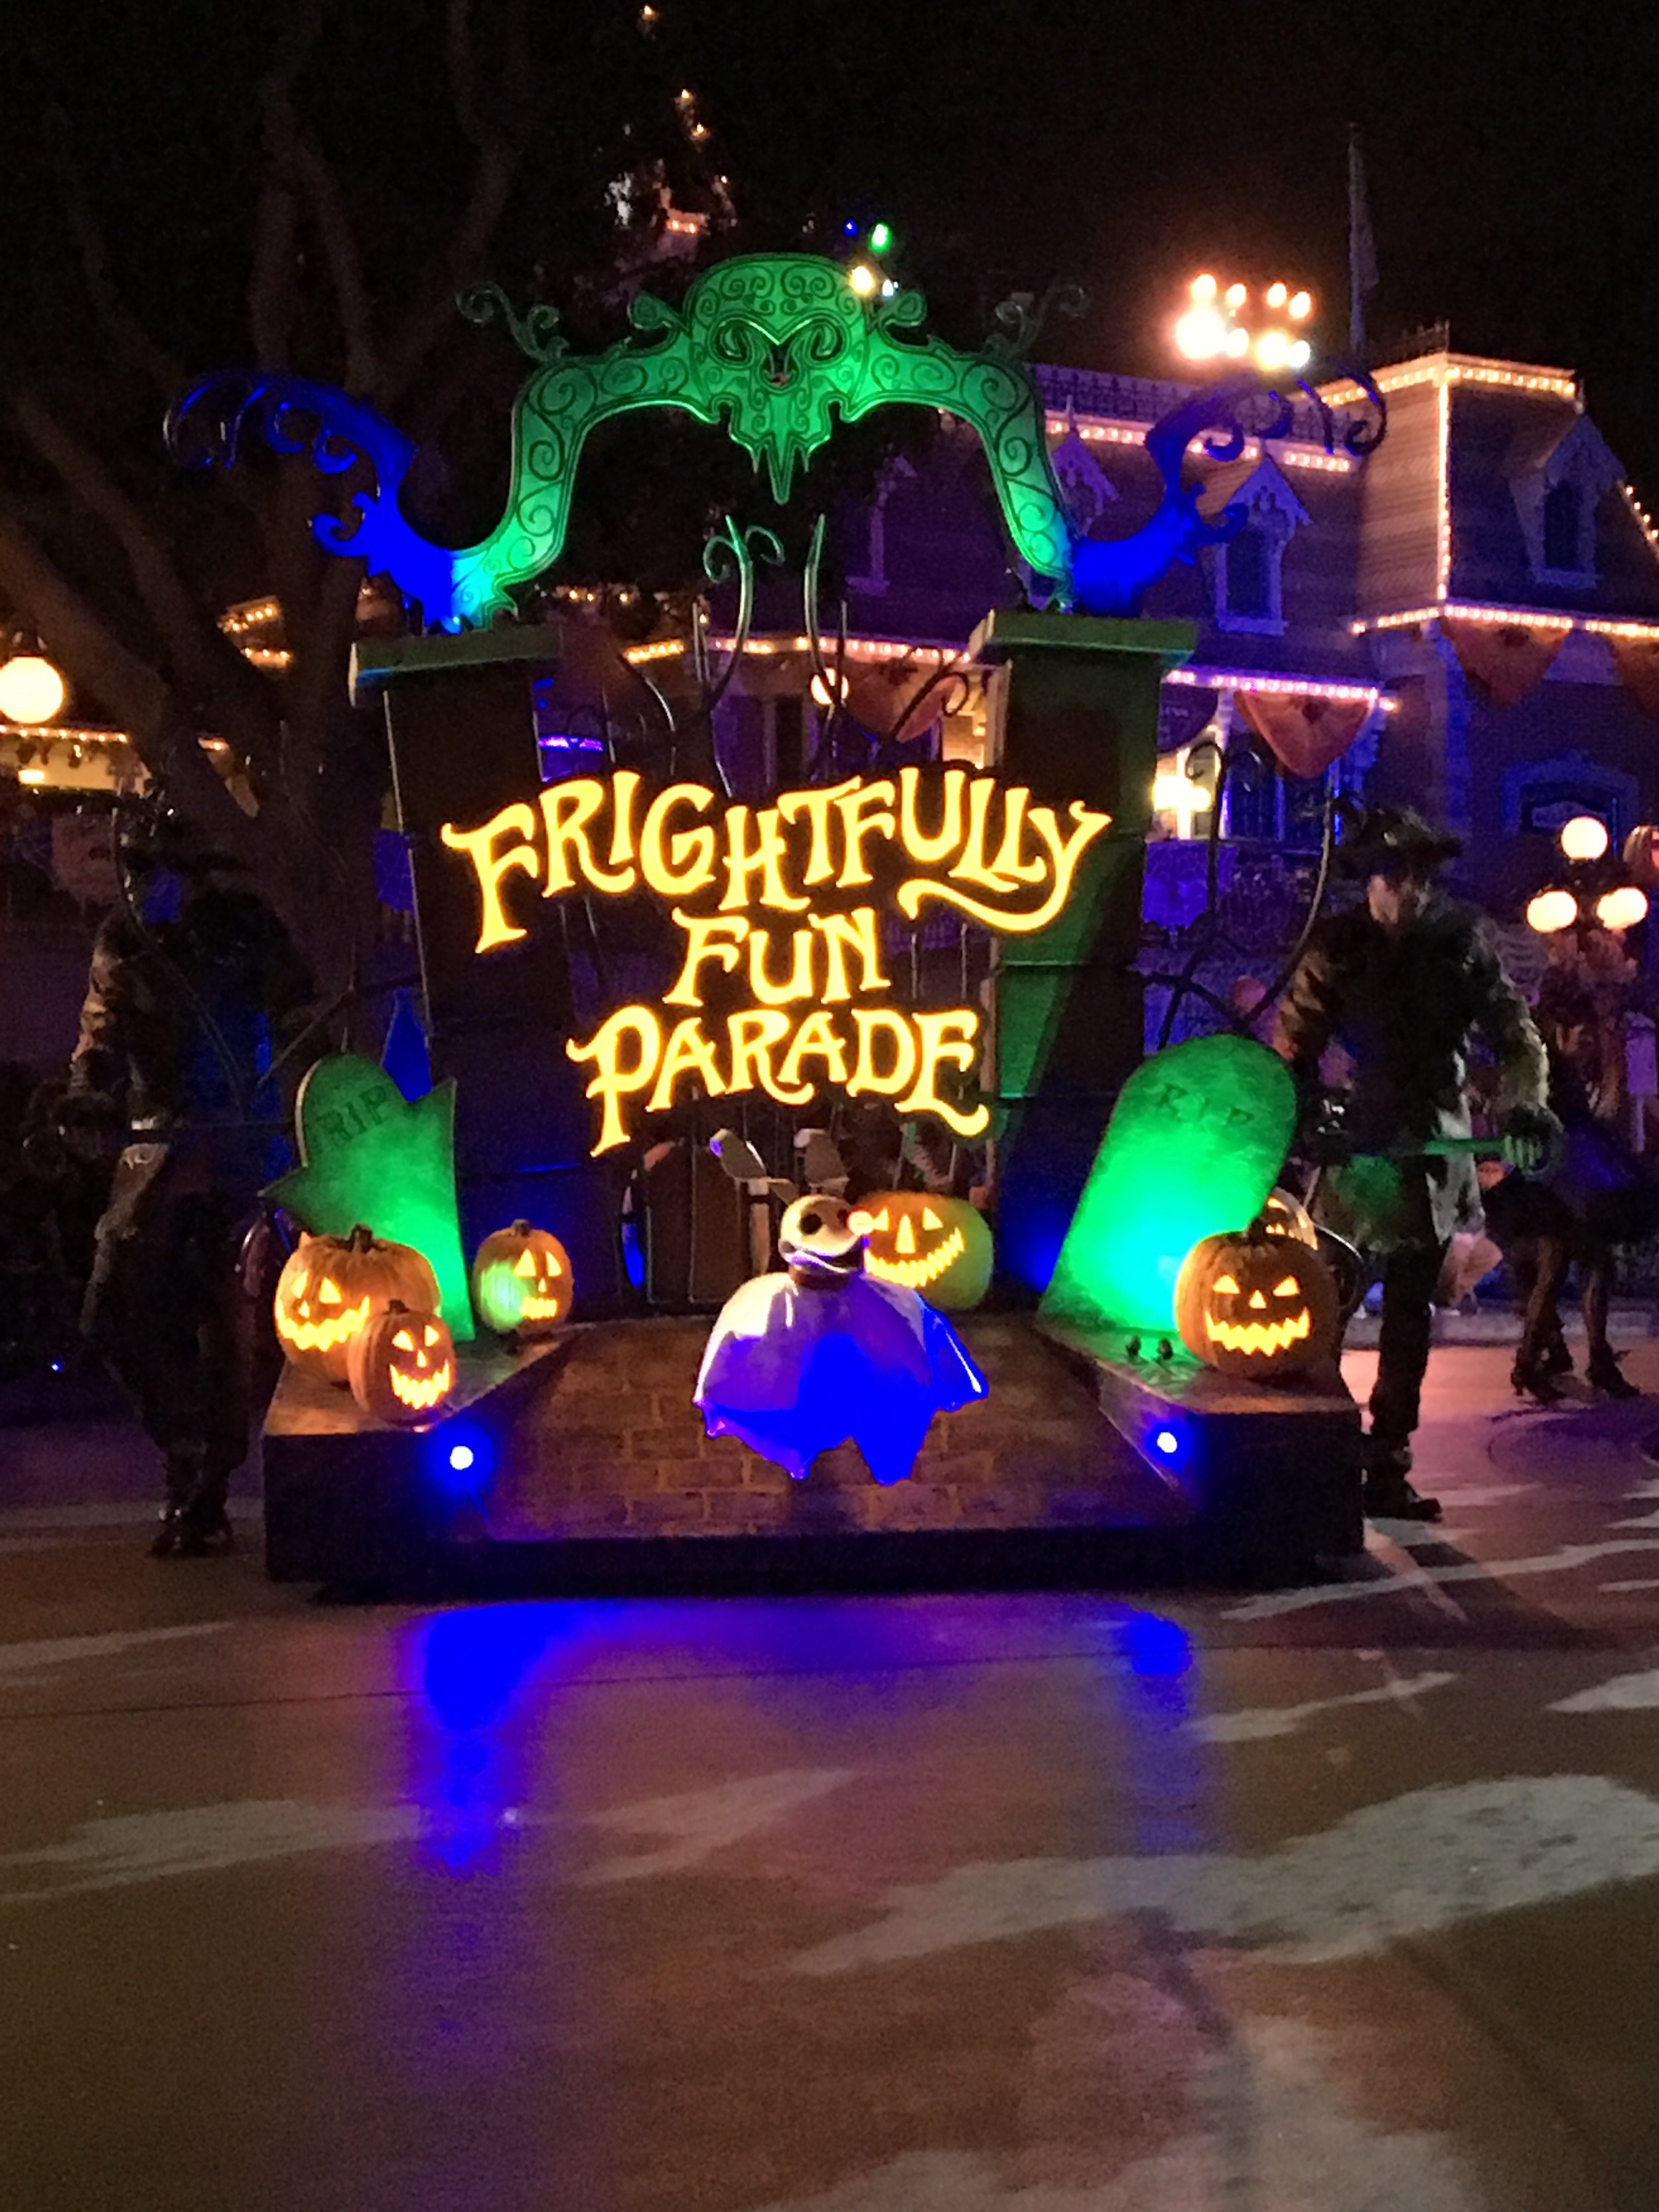 Mickey's Not So Scary Halloween Party and Oogie Boogie Bash Without Kids. #MNSSHP #OogieBoogieBash #Disneyland #WaltDisneyWorld #WDW #DCA #DisneyCaliforniaAdventure #Halloween #Disney #HalloweenAtDisney